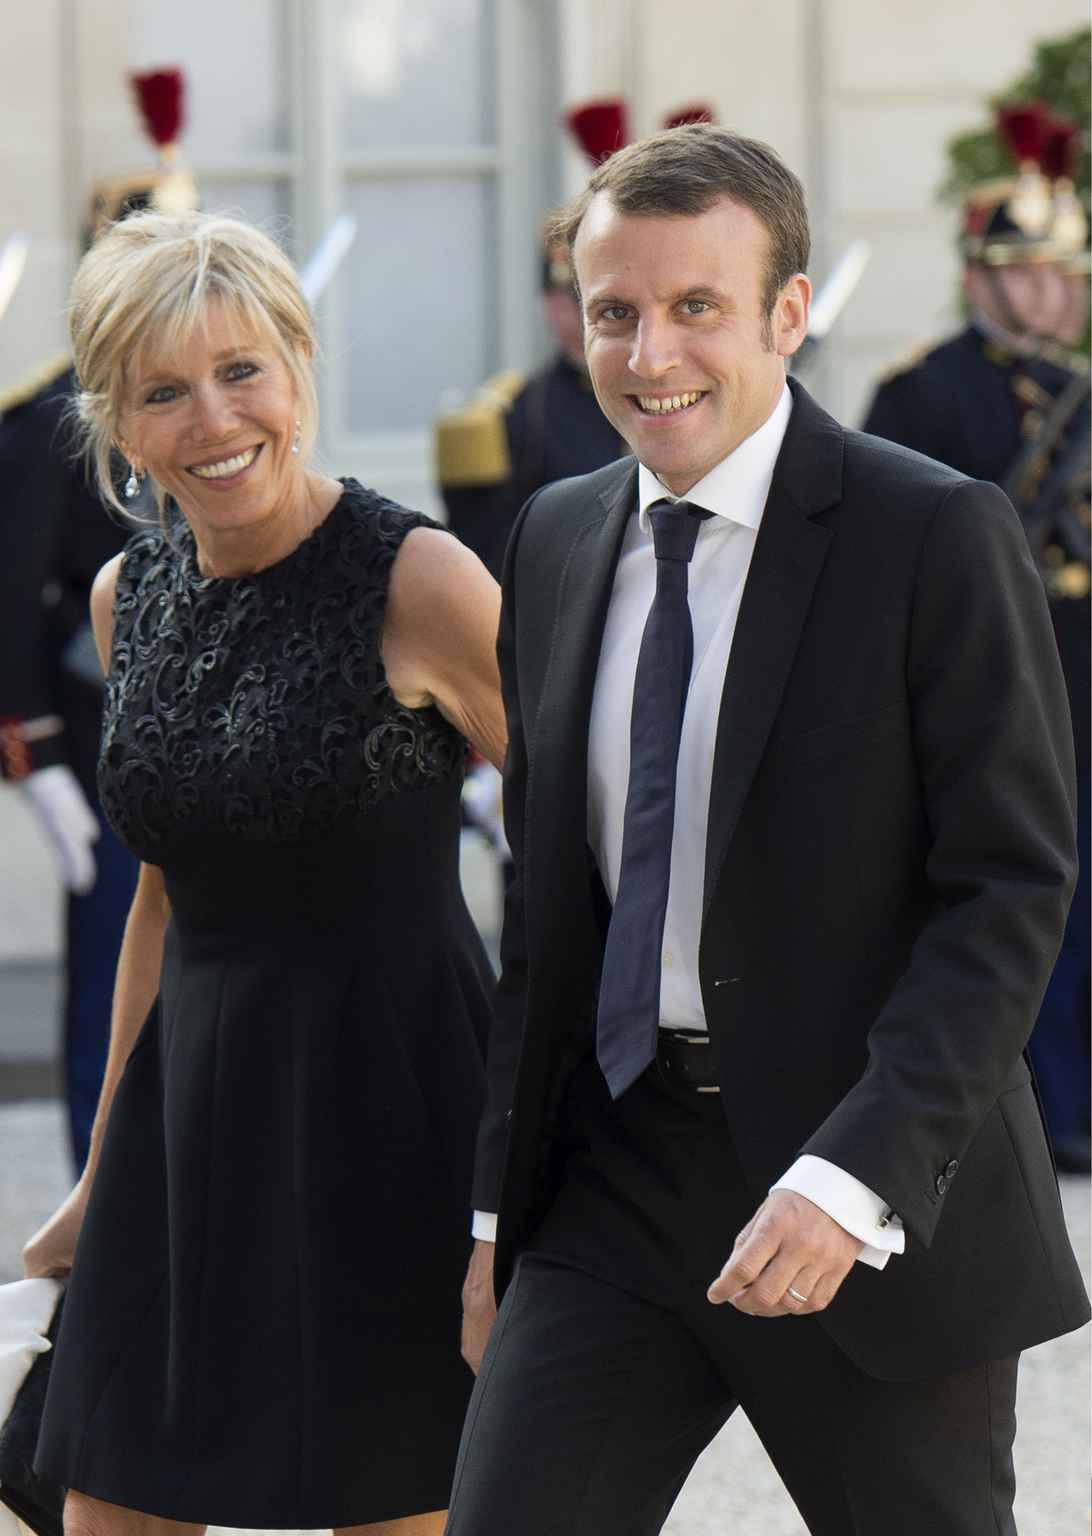 la femme d 39 emmanuel macron fait sa premi re apparition officielle avec son mari. Black Bedroom Furniture Sets. Home Design Ideas